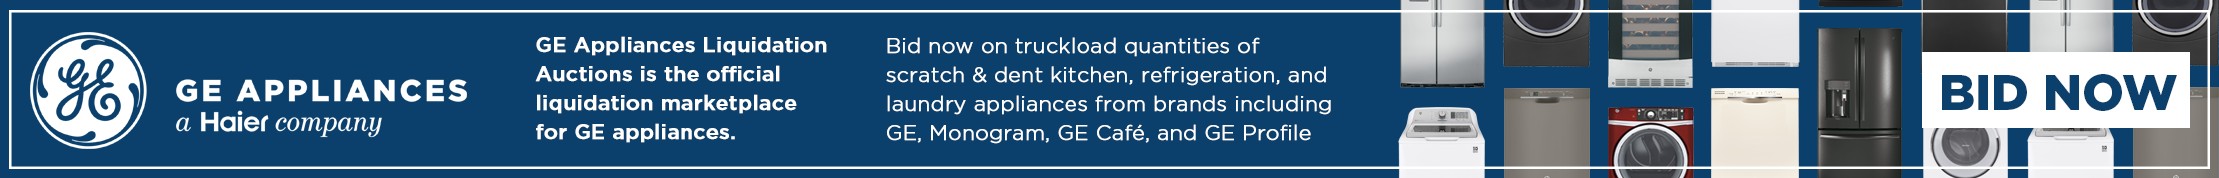 GE Appliances Liquidation Auctions Launch